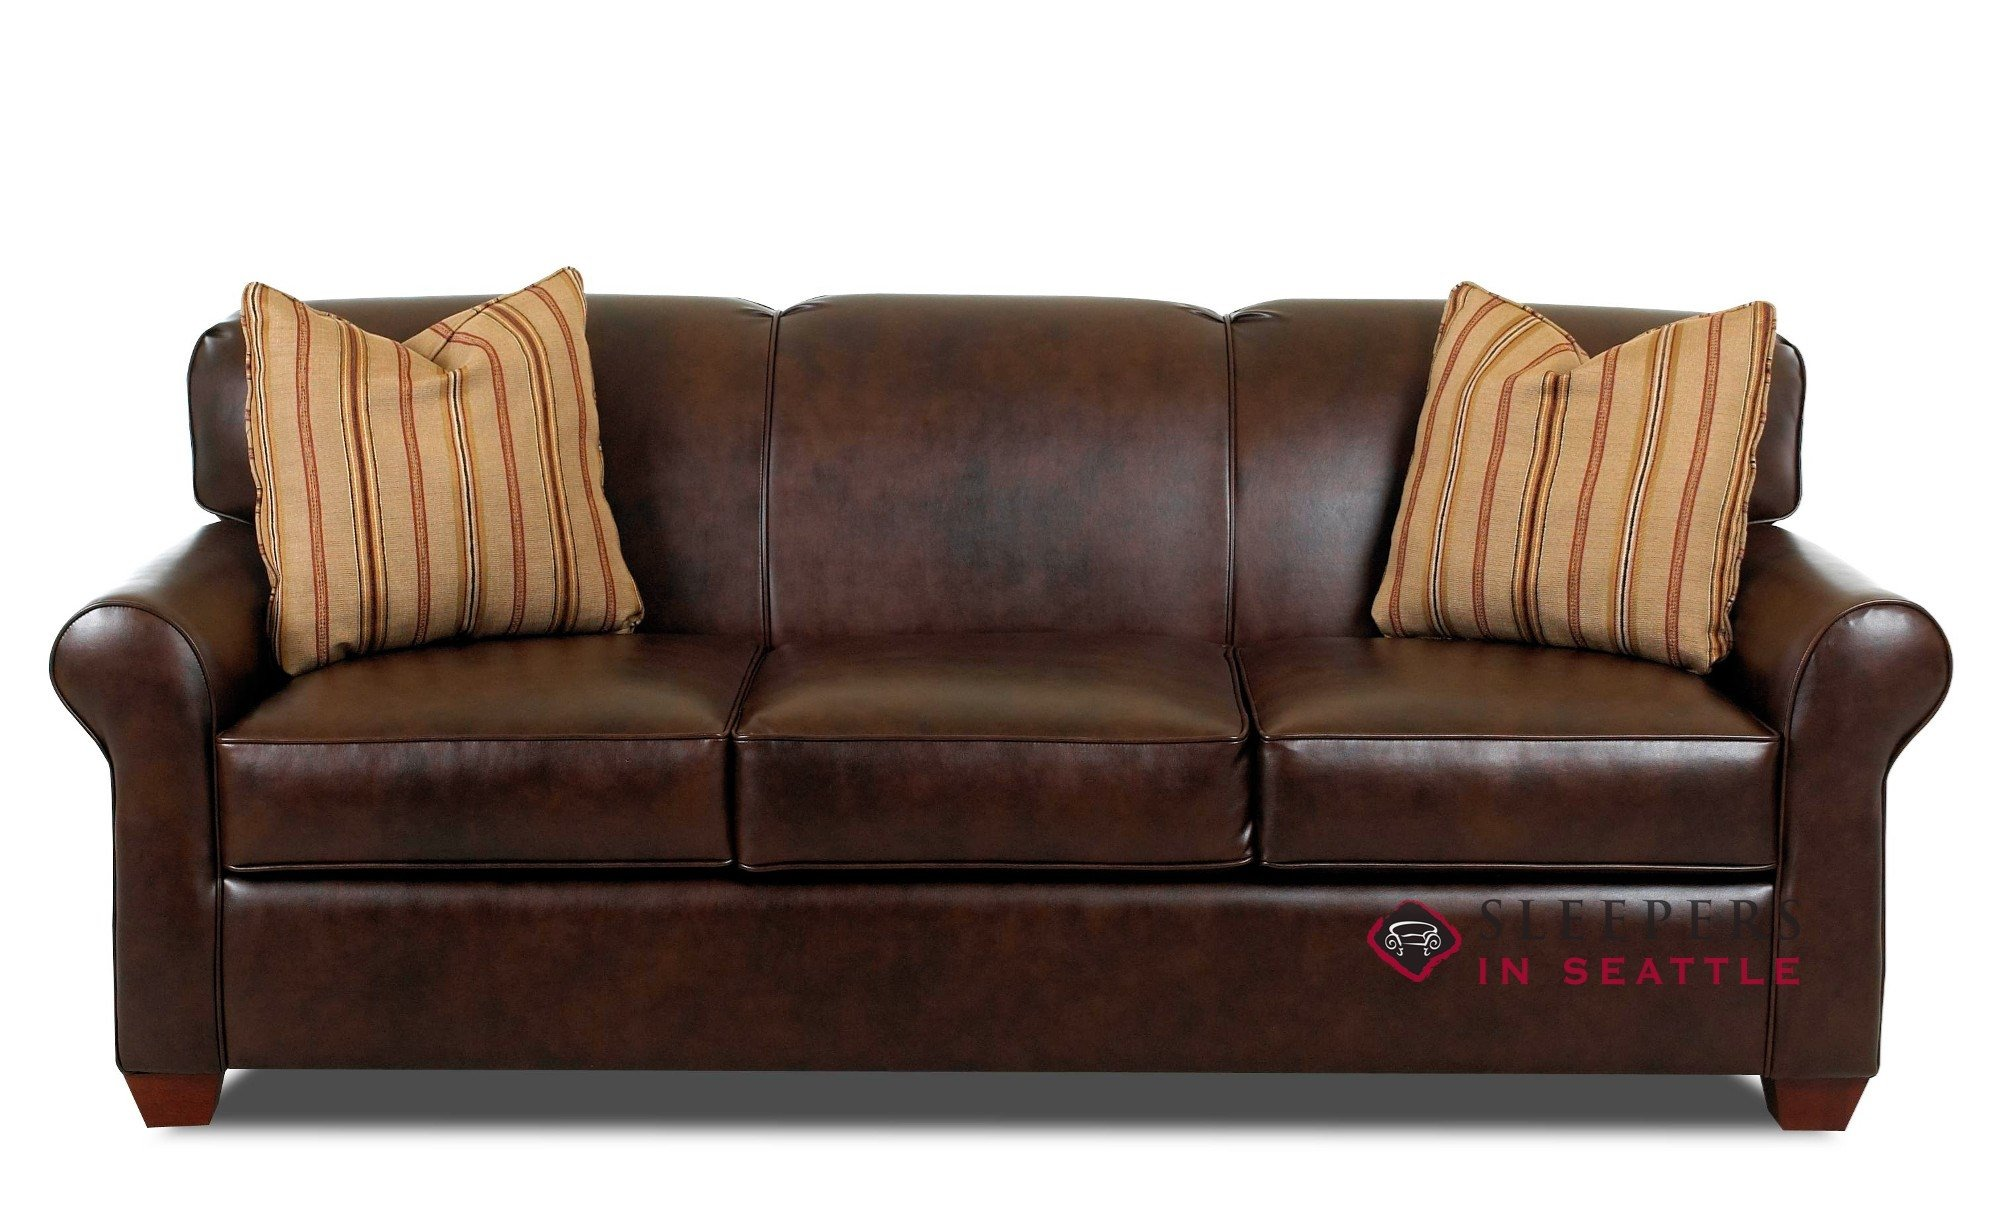 All Queen Size Leather Sleeper Sofa Beds | SleepersInSeattle.com